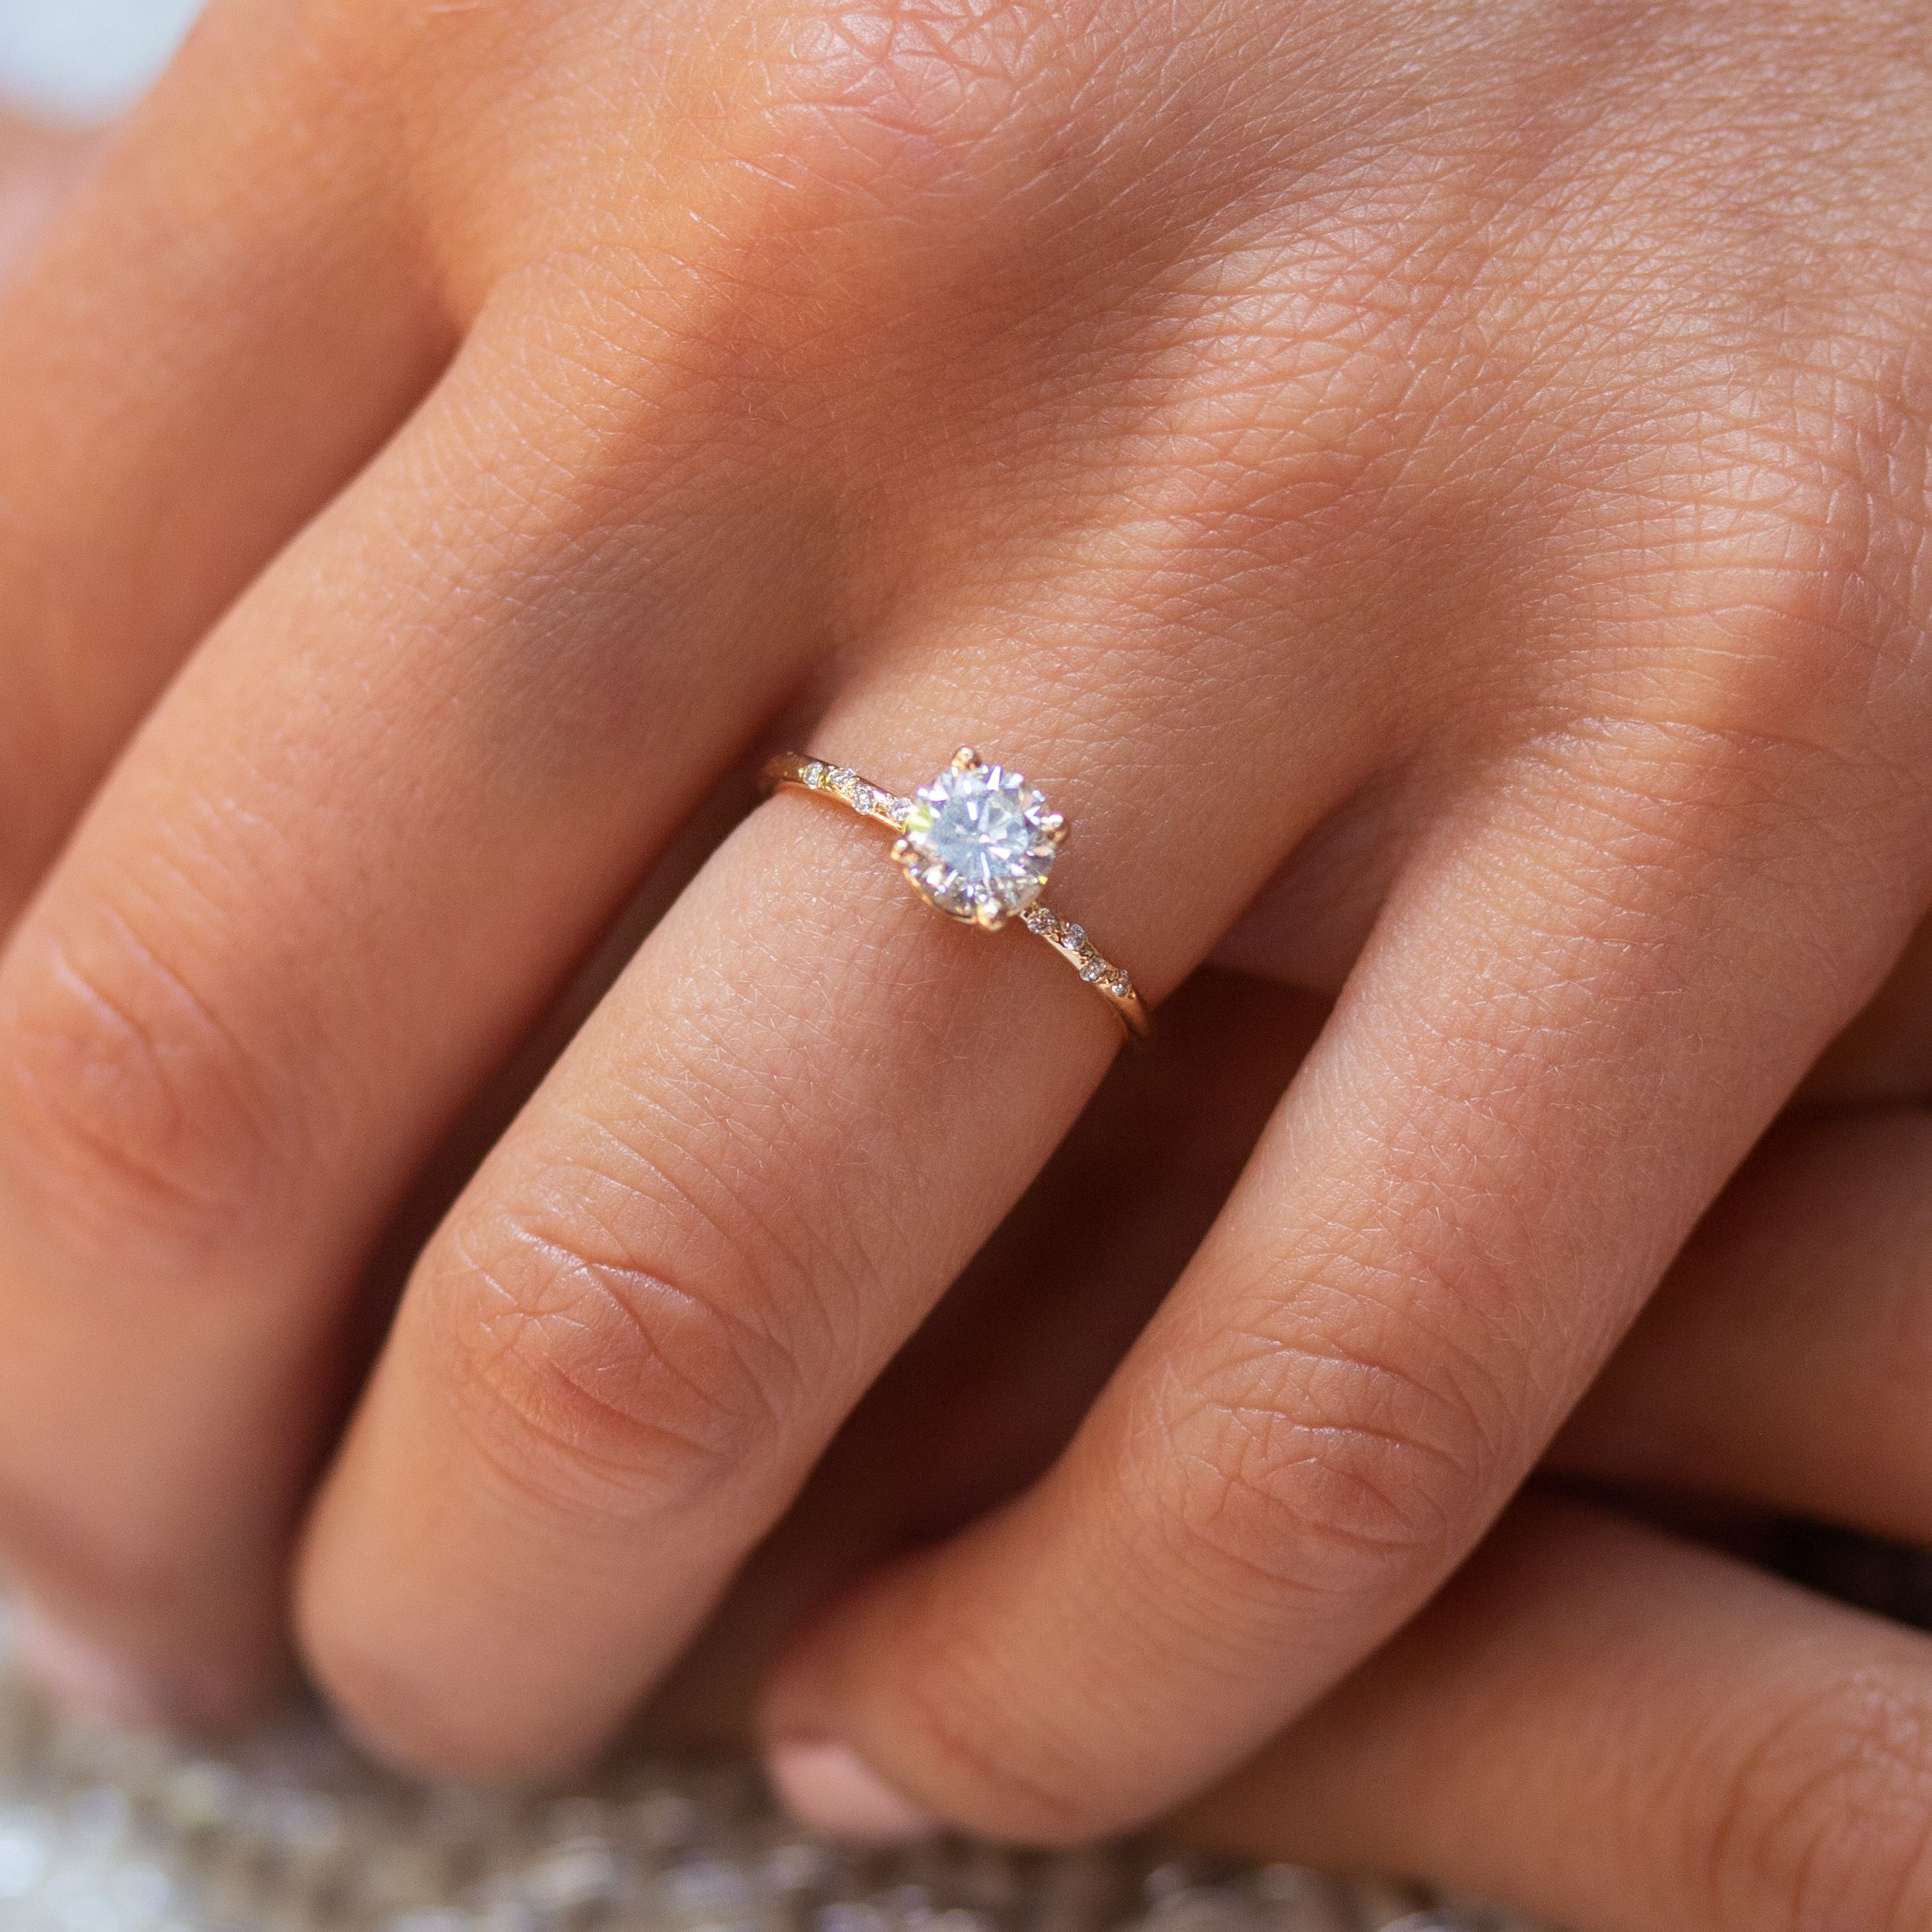 That Starry Sparkle #aquamarineengagementring